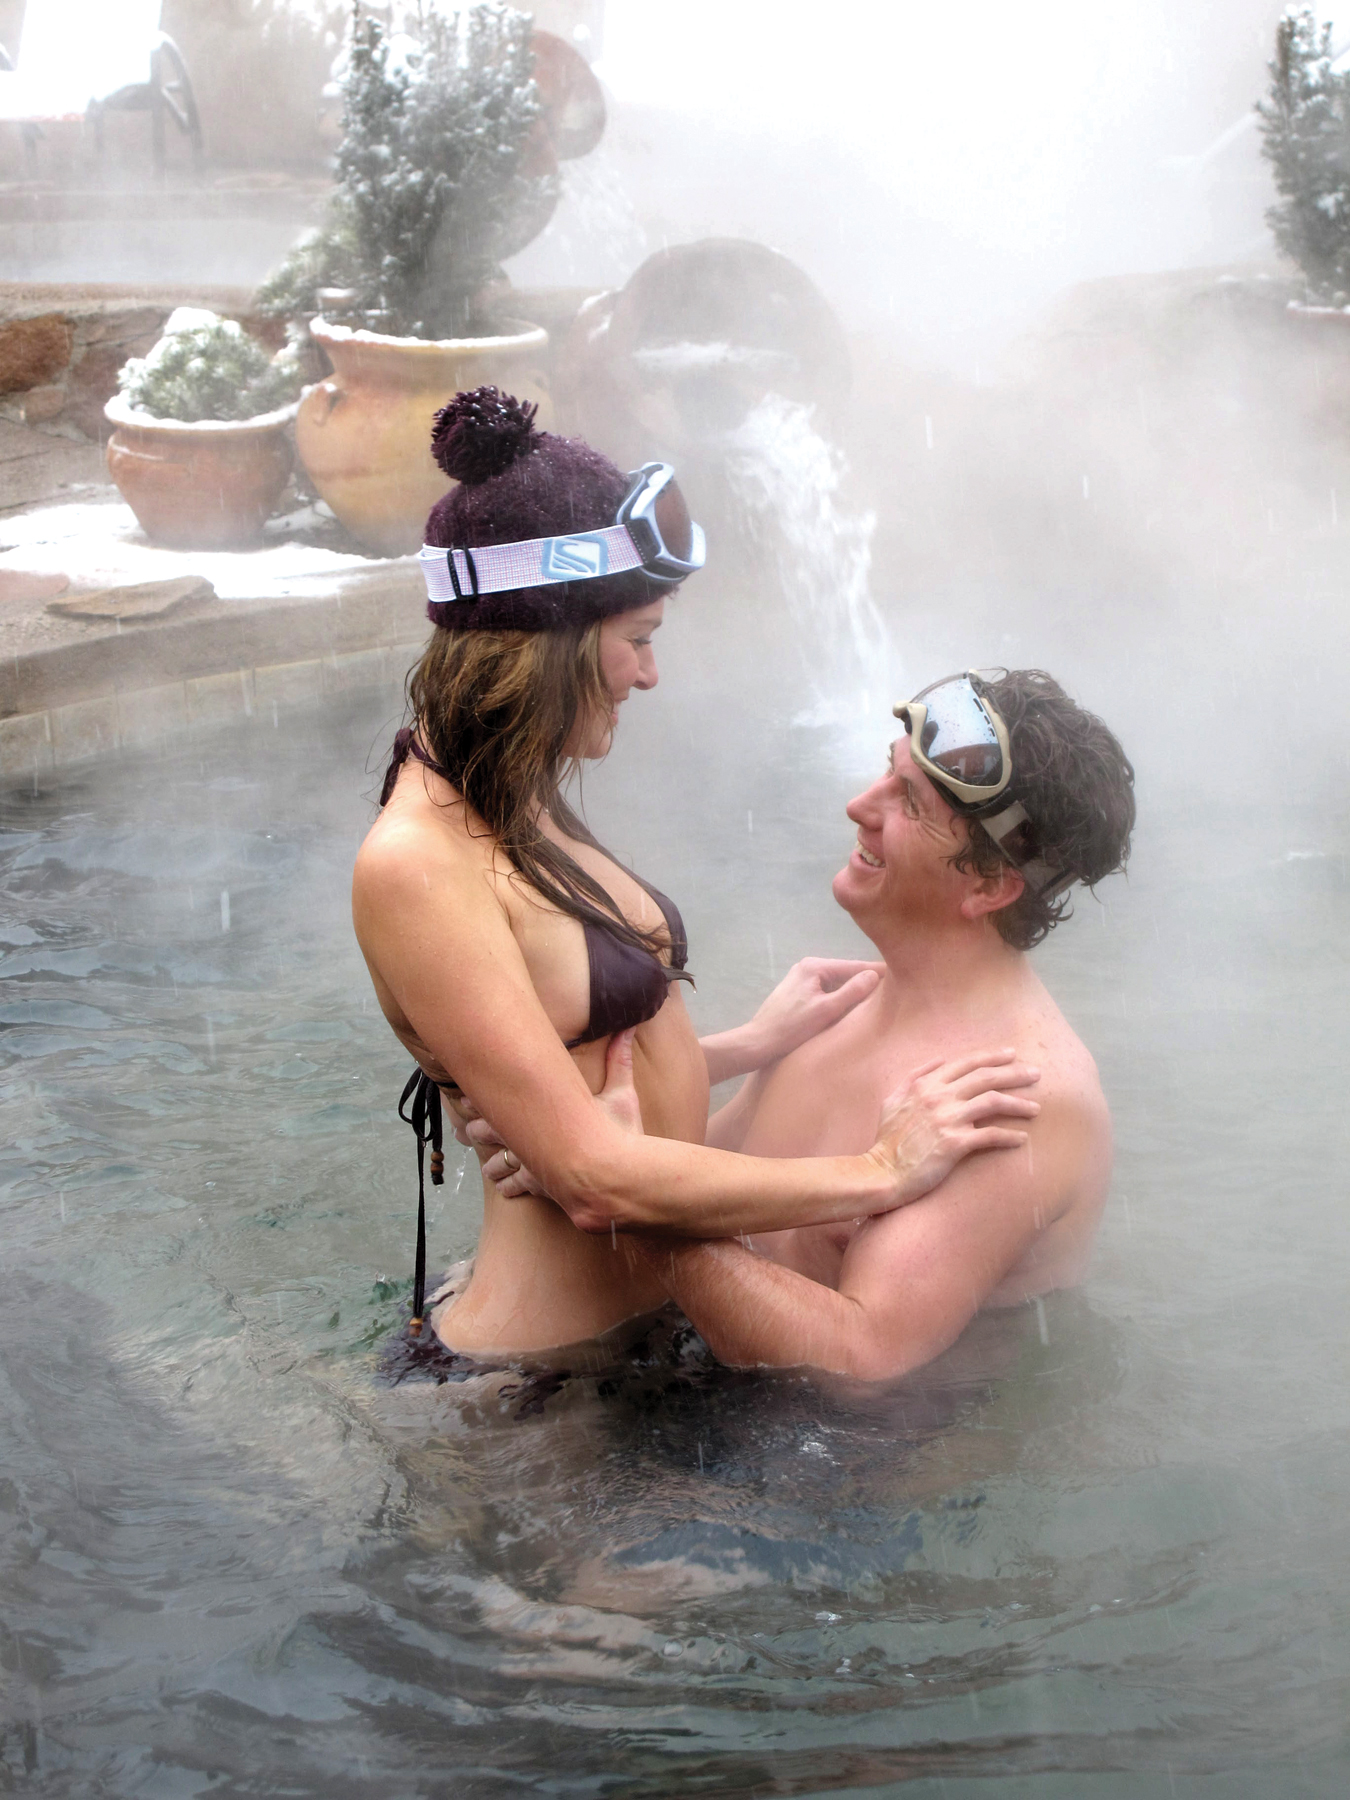 Ojo Caliente Mineral Springs Resort Amp Spa Celebrates Love